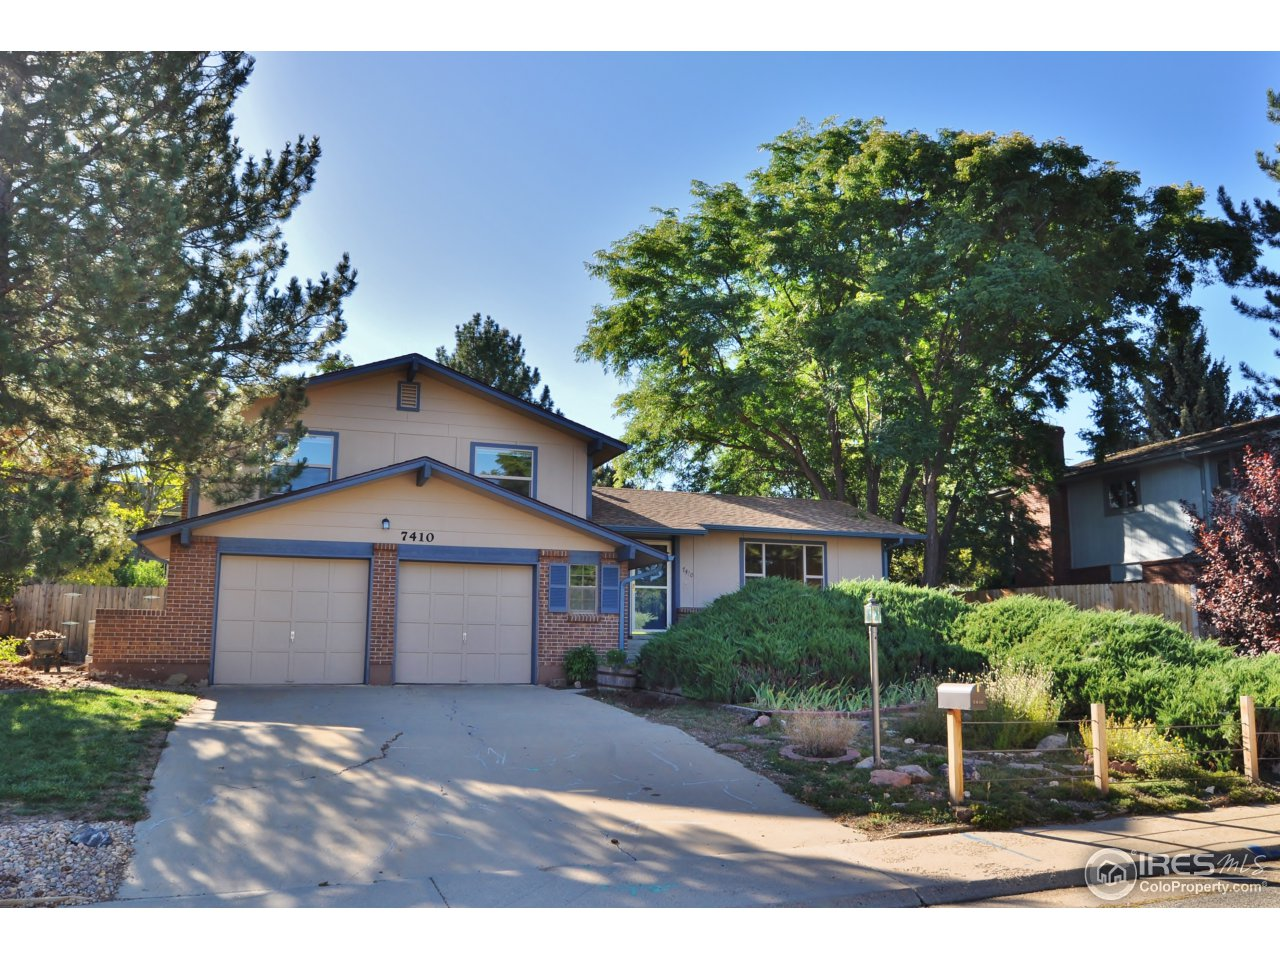 7410 Mount Meeker Rd, Longmont CO 80503